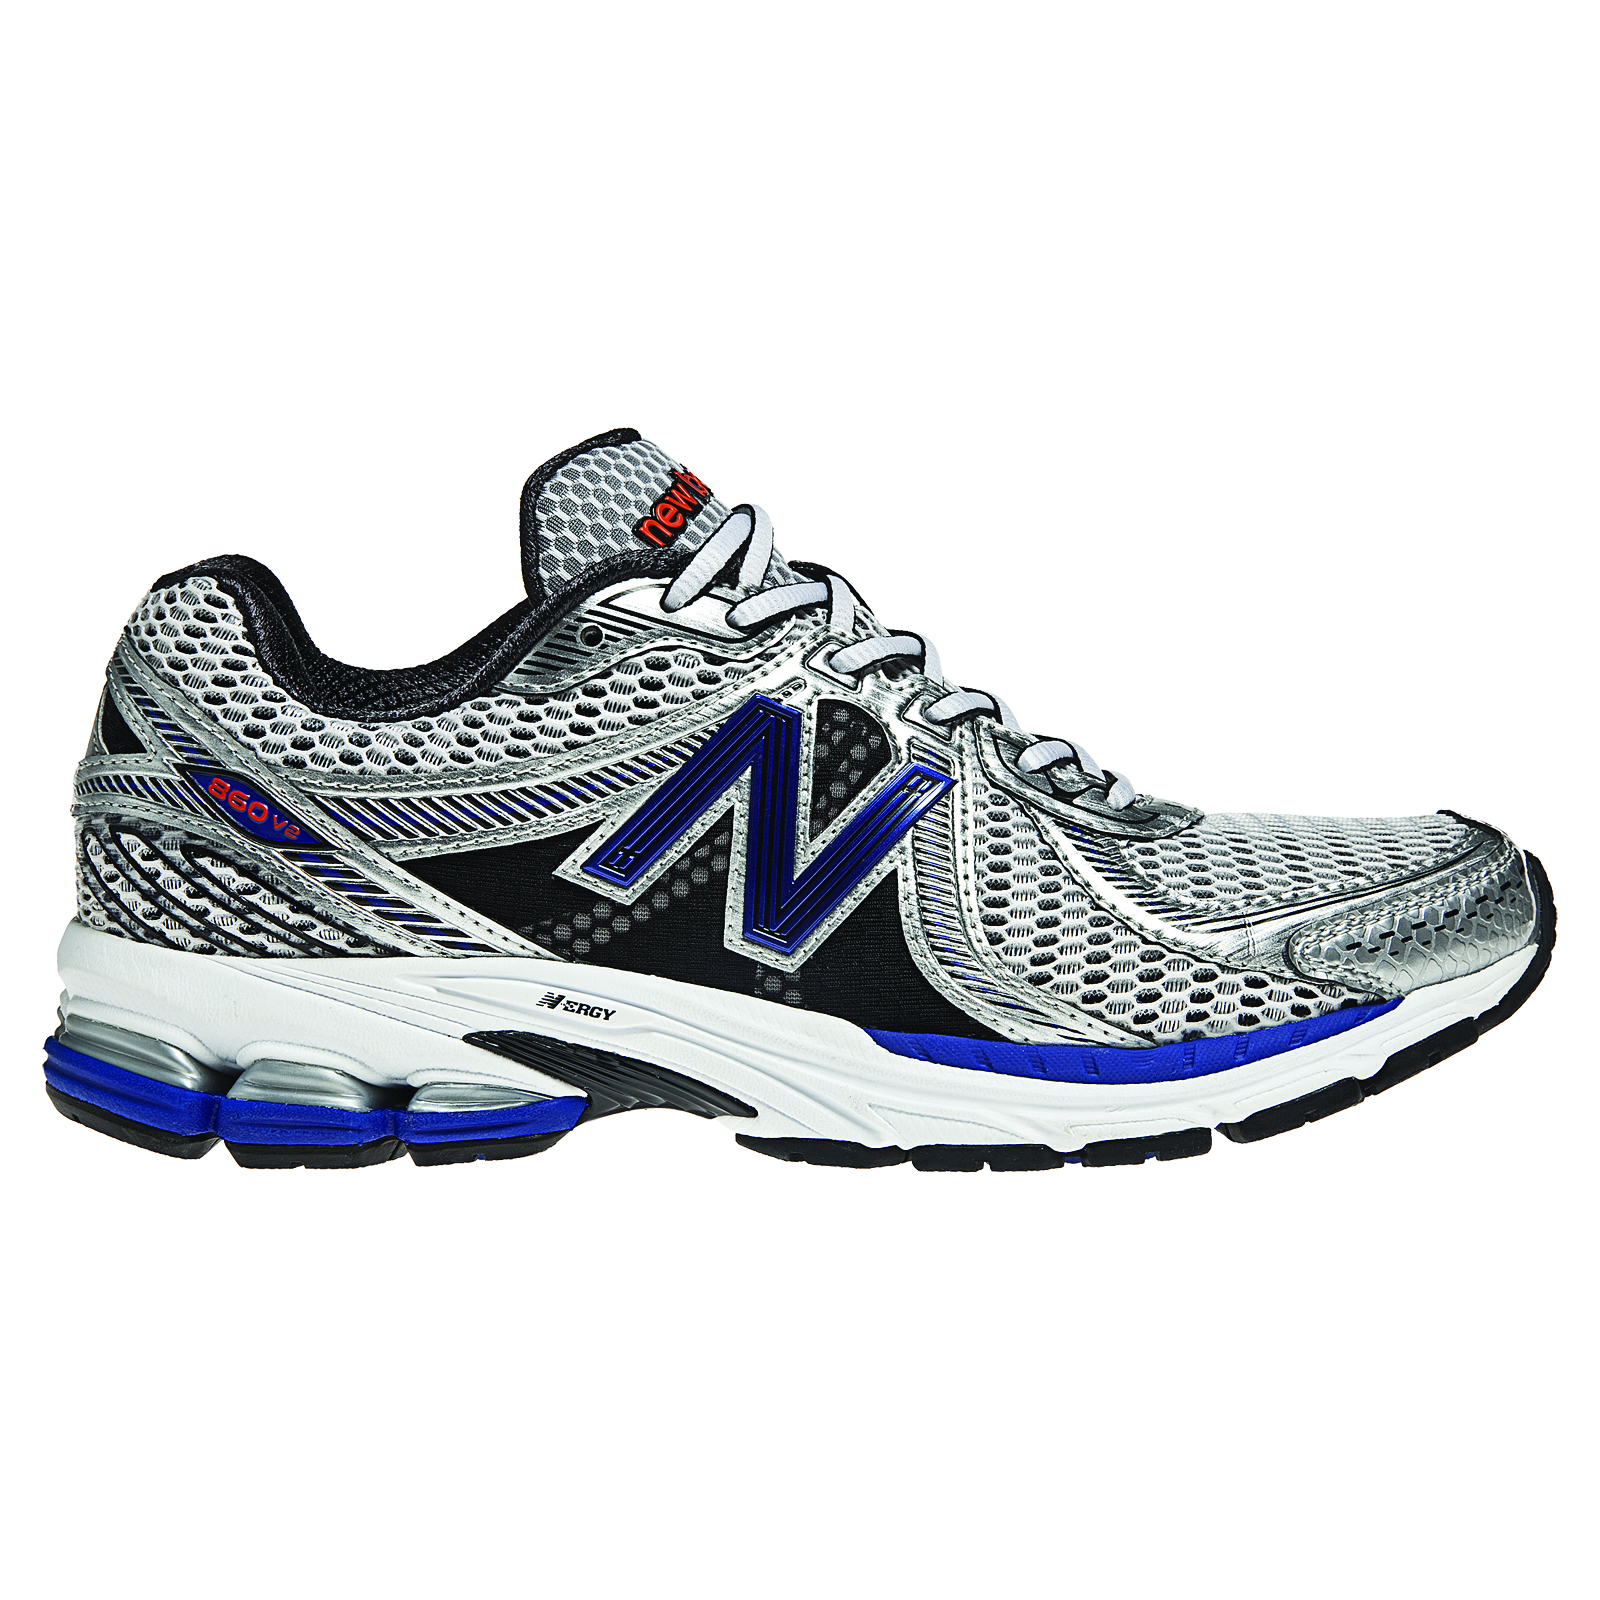 Best Running Shoes For Road